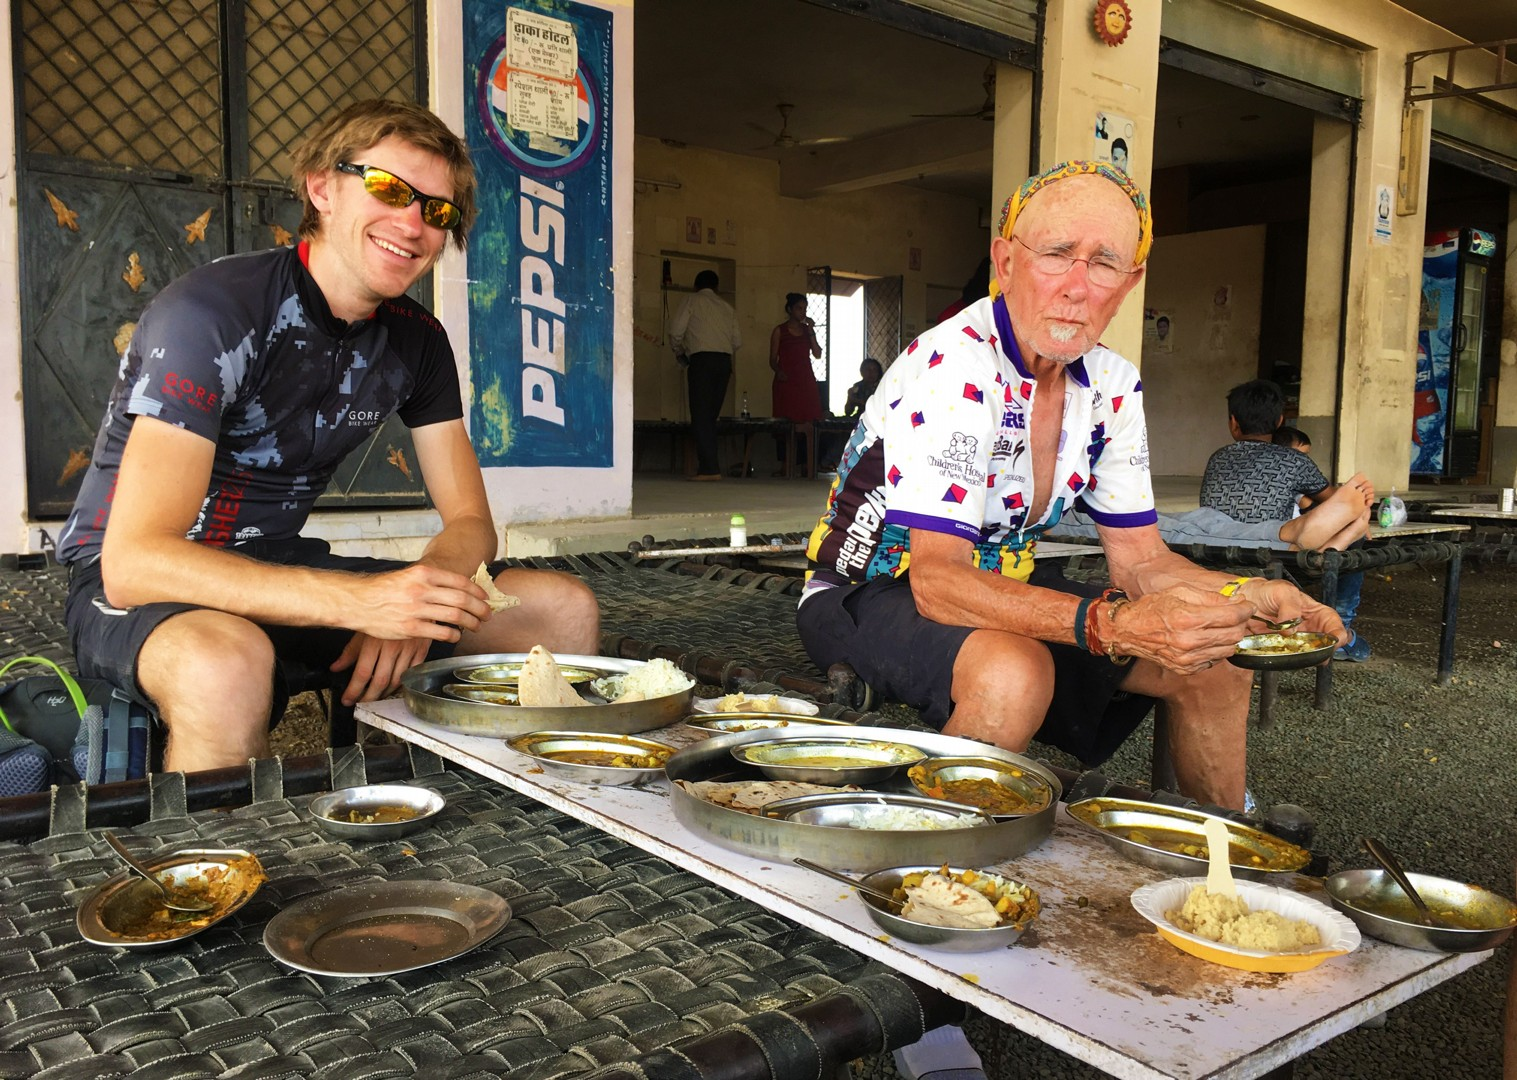 authentic-cuisine-in-rajasthan-on-guided-cycling-trip.jpg - India - Palaces and Lakes of Rajasthan - Cycling Adventures